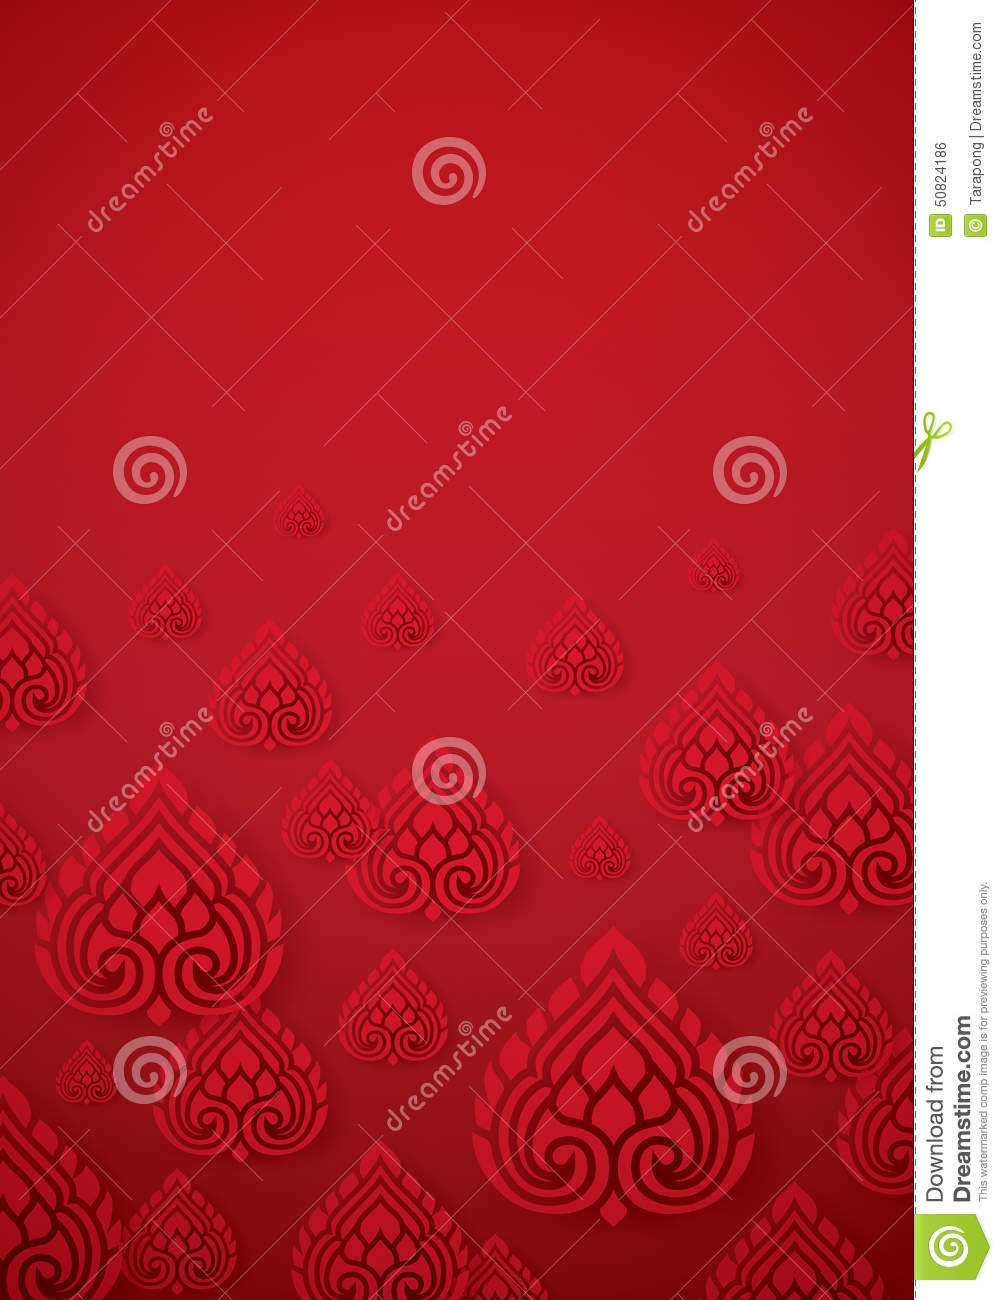 Book Cover Design From East Asia : Asian traditional design vector illustration